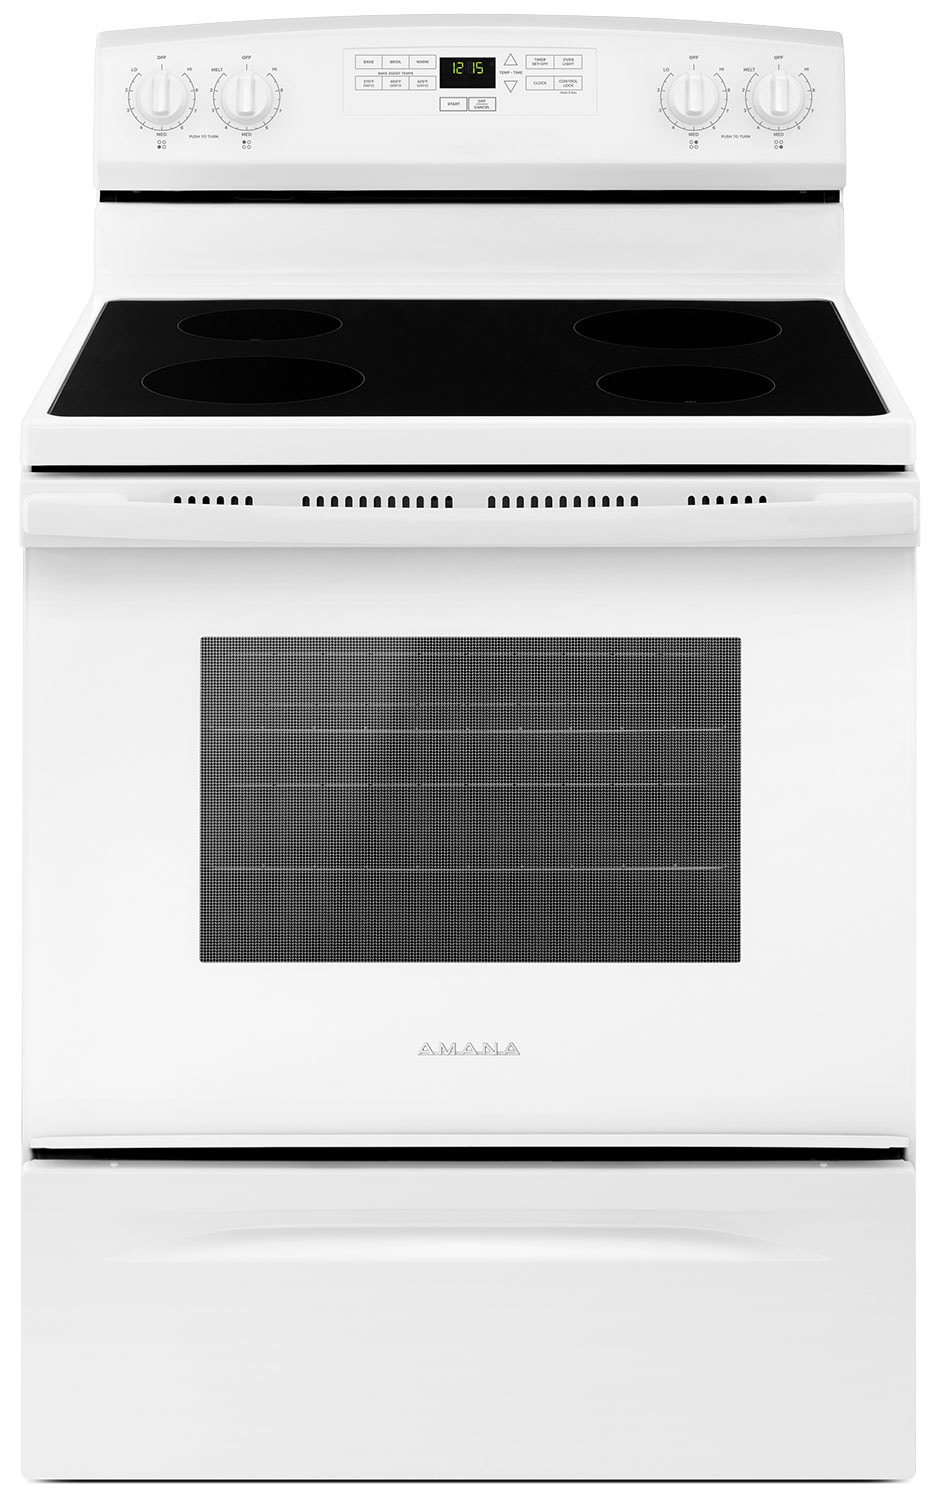 Amana 4.8 Cu. Ft. Freestanding Electric Range – YAER6303MFW